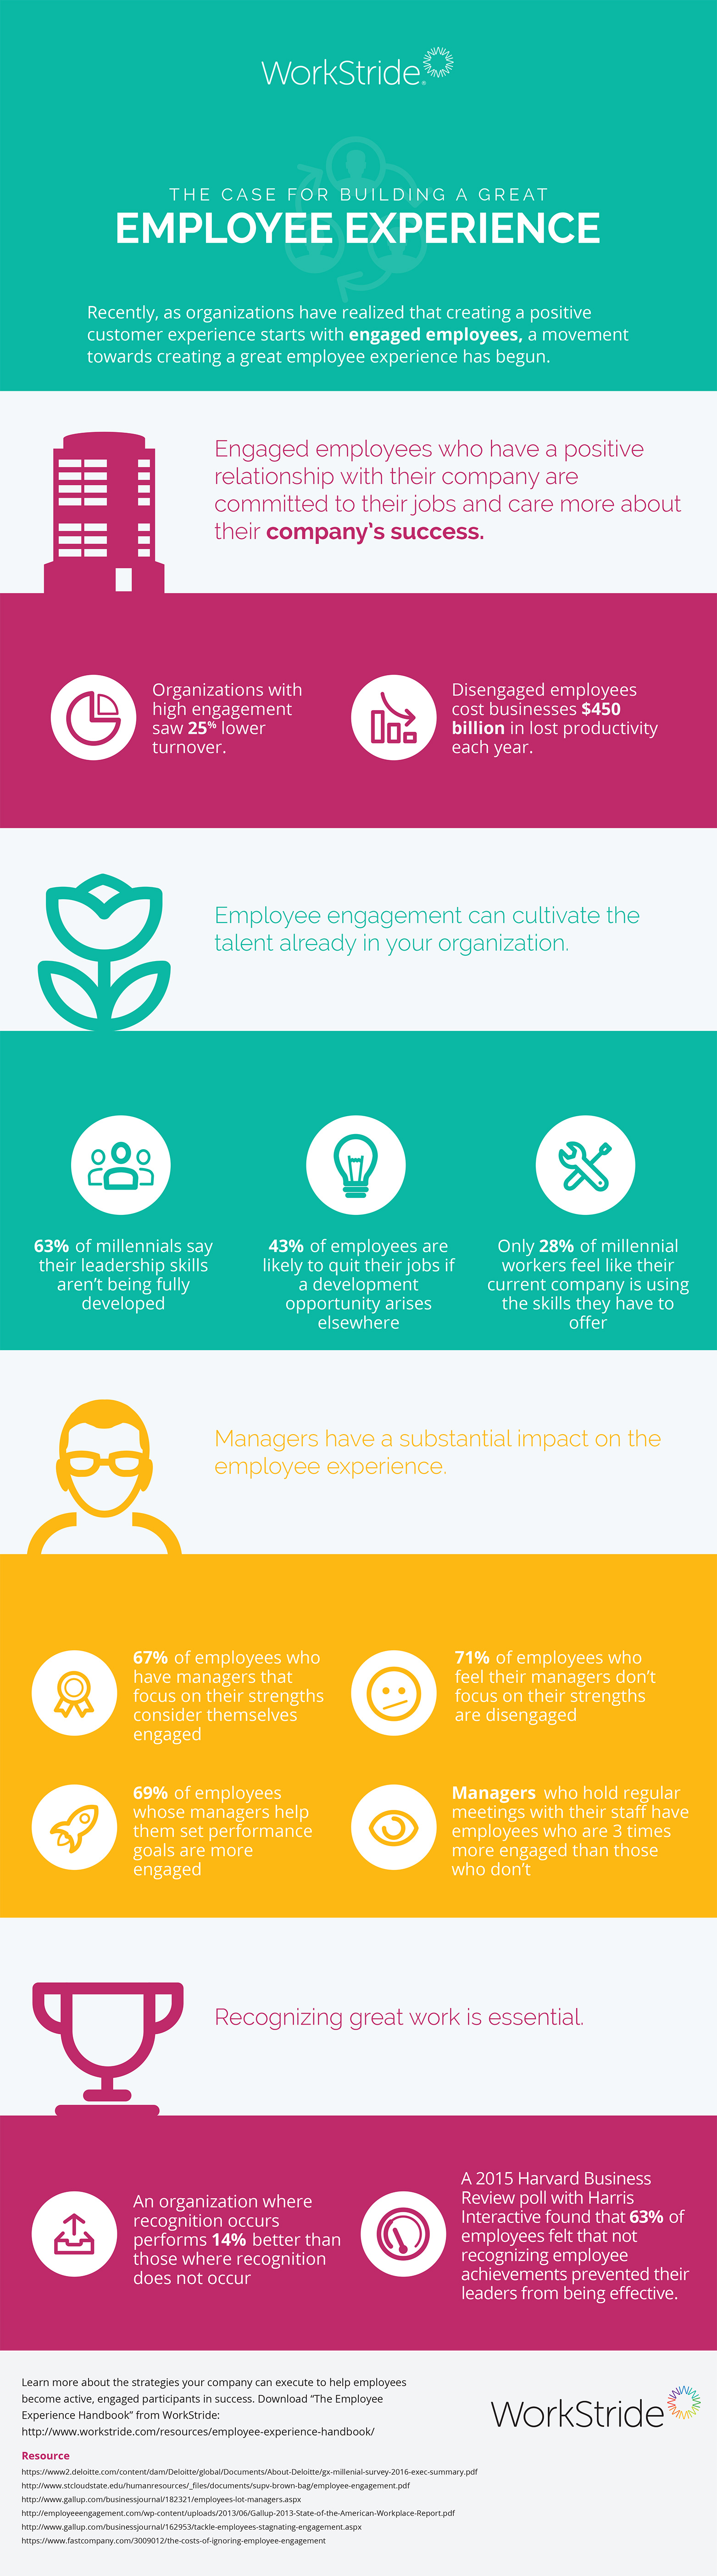 Employee experience infographic workstride